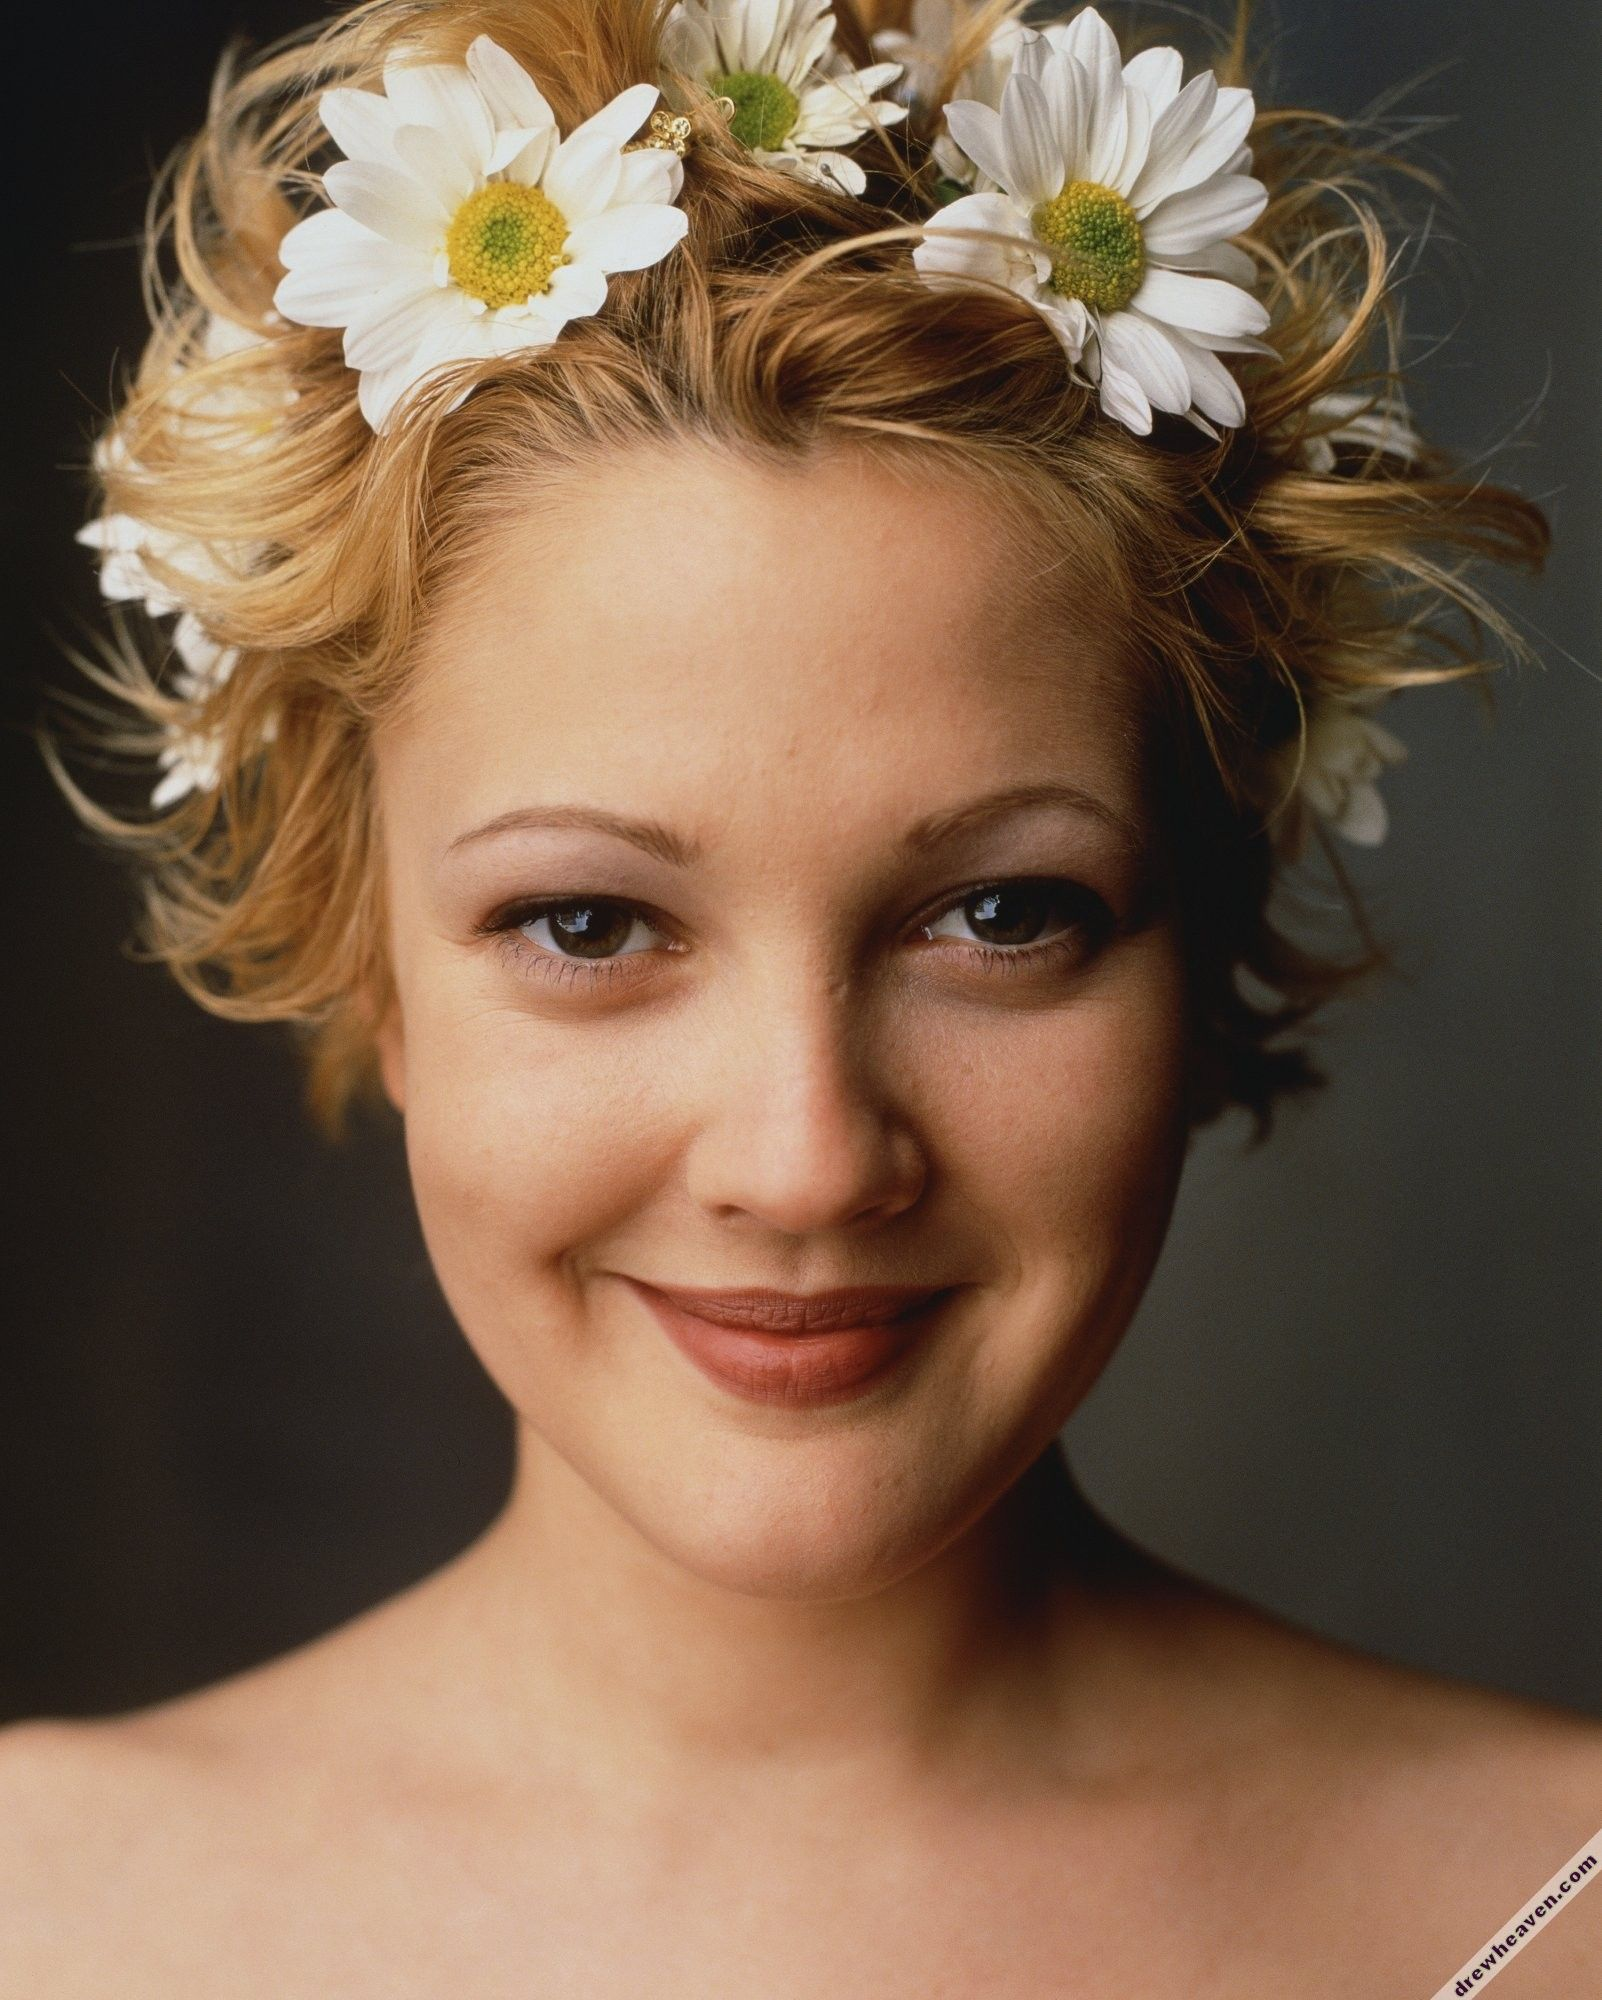 People 1602x2000 Women Actress Blonde Short Hair Drew Barrymore